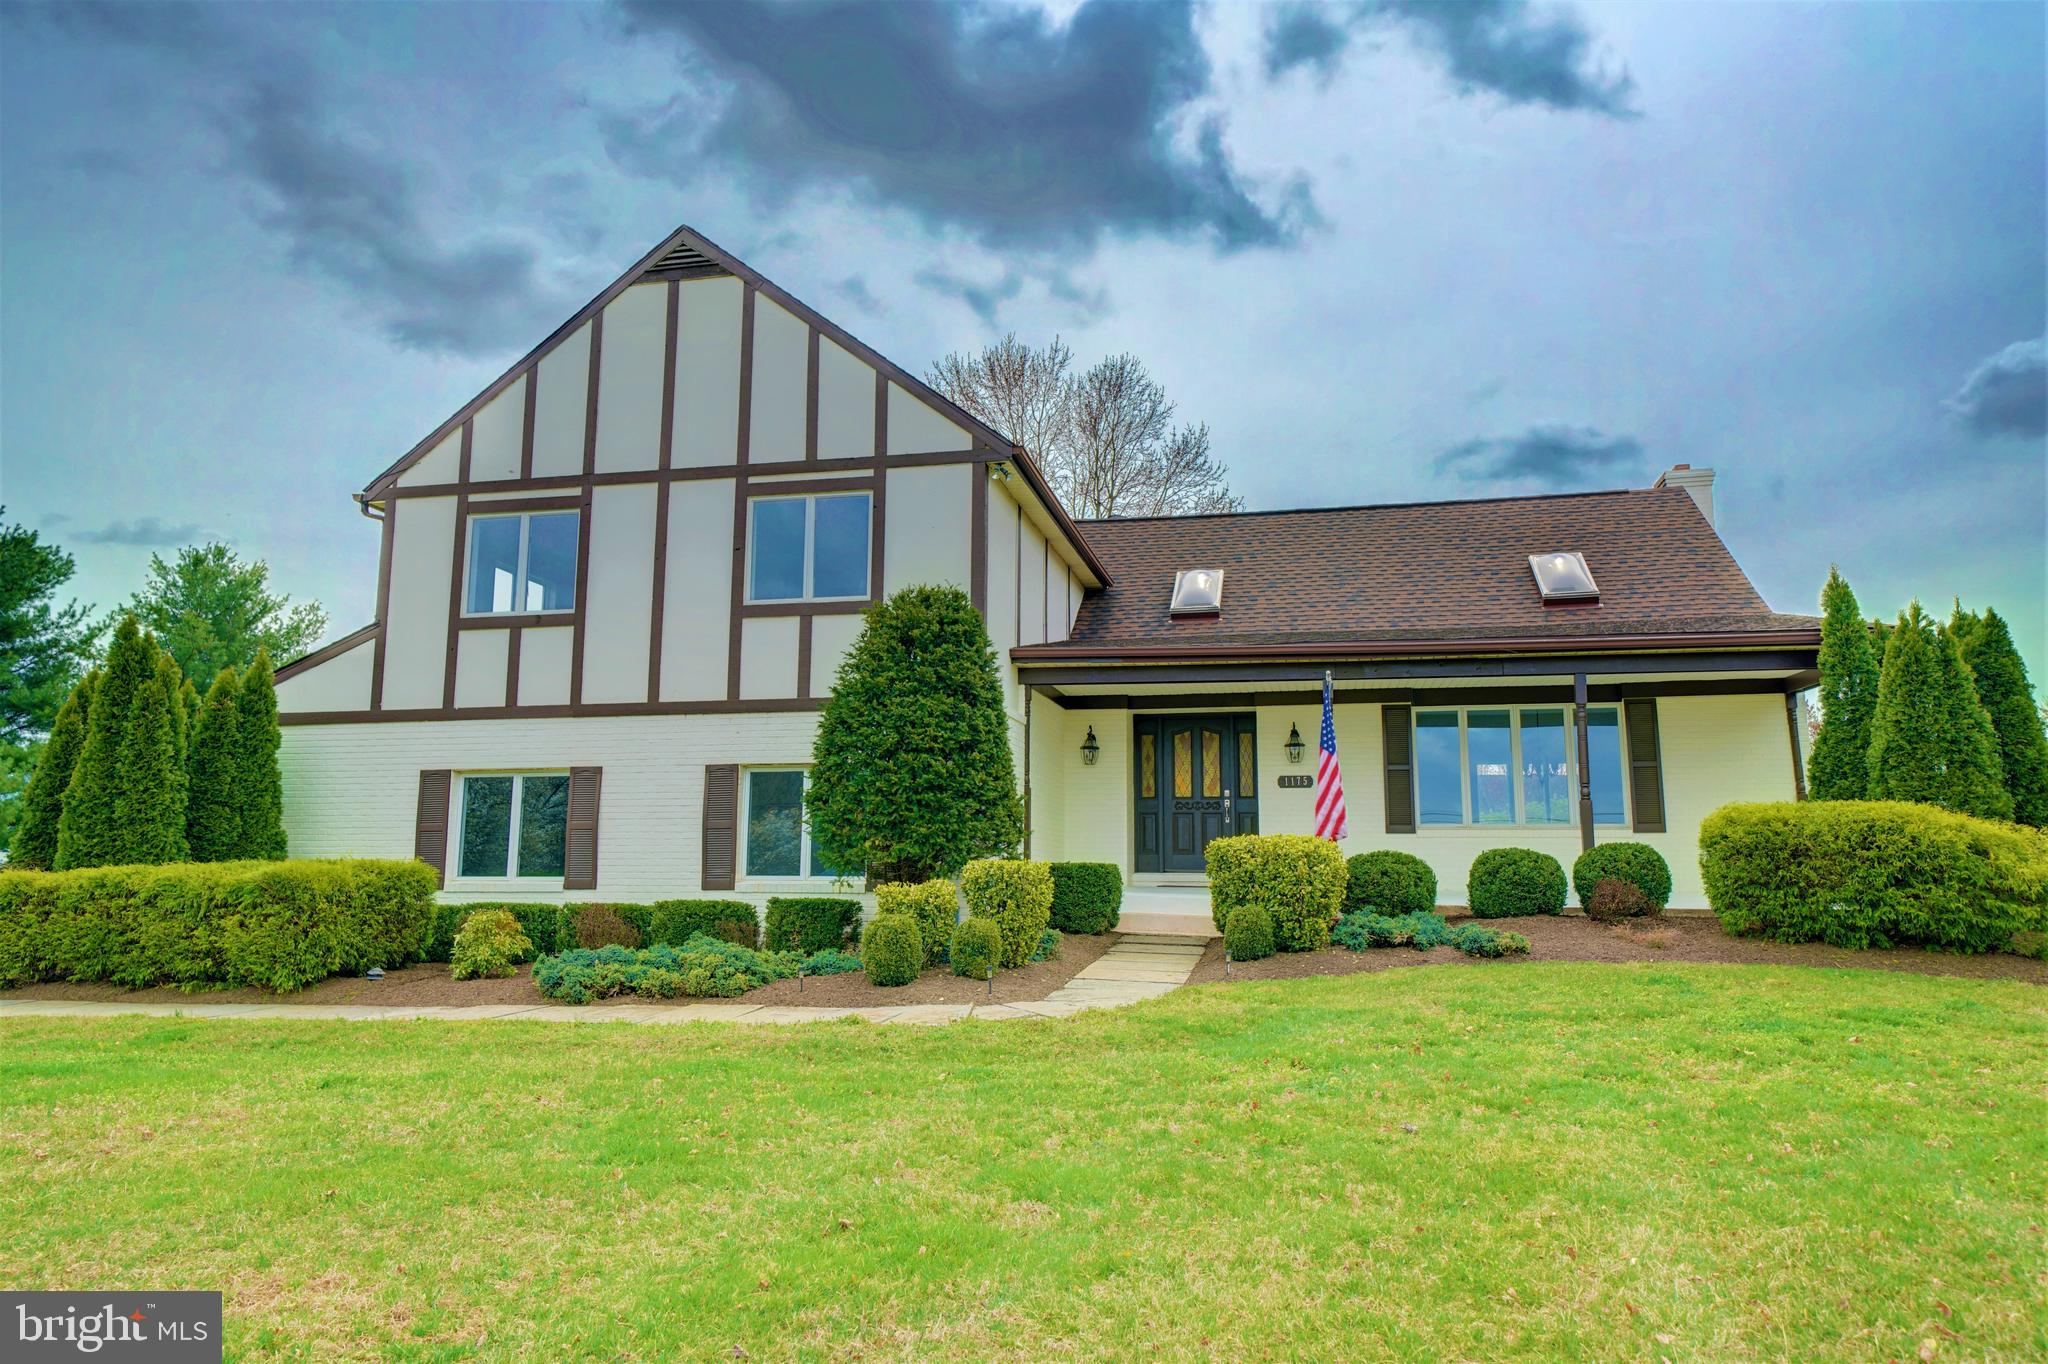 1175 LONG CORNER ROAD, MOUNT AIRY, MD 21771